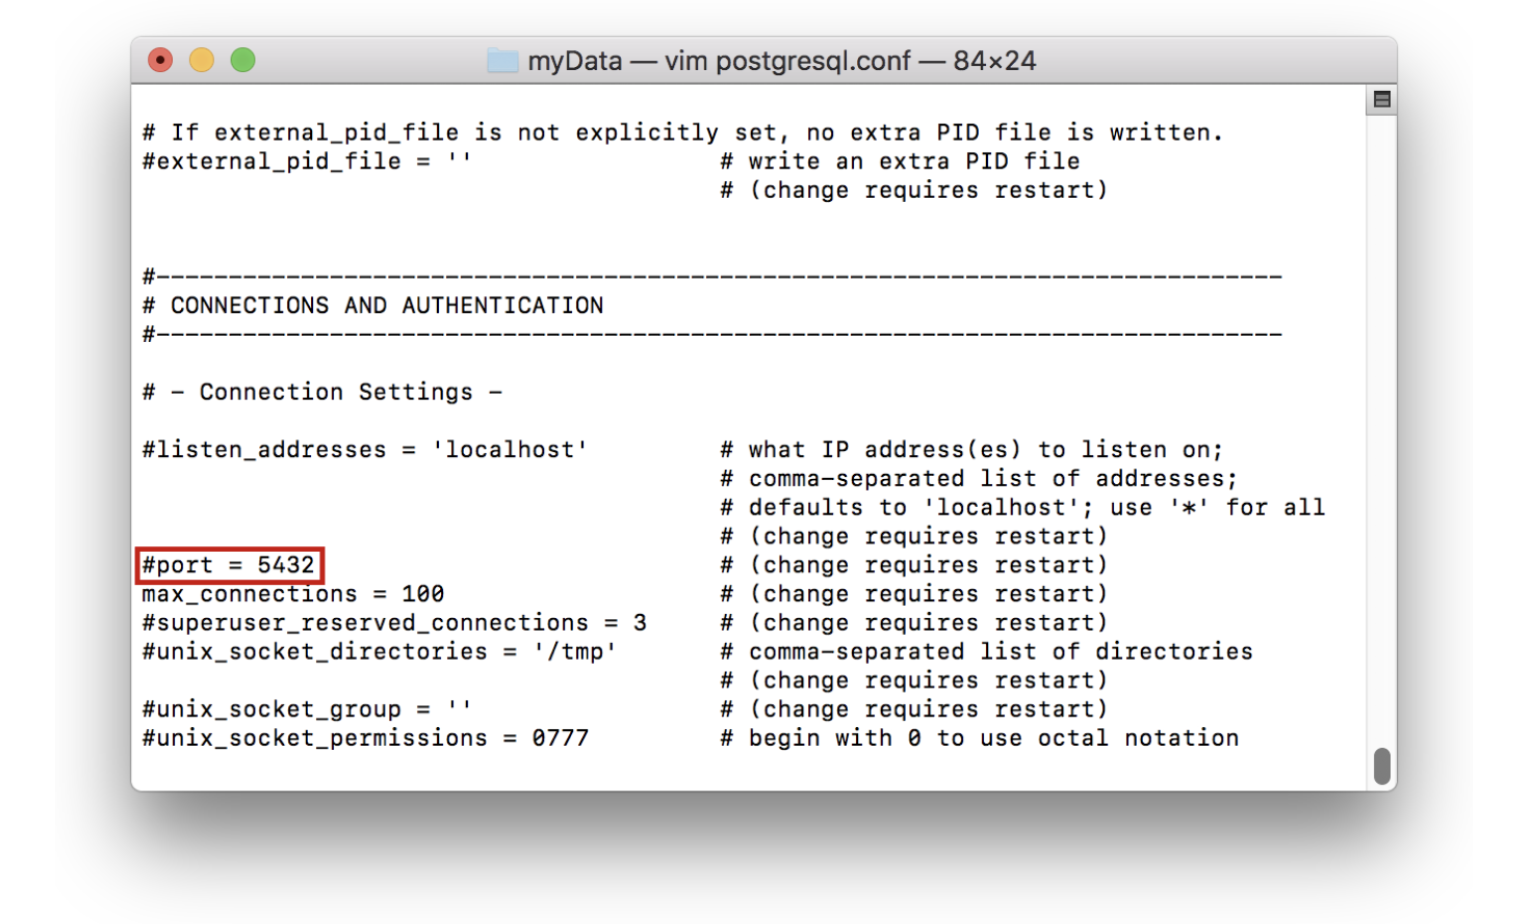 shows how to edit the port in the command line interface by editing the .conf file